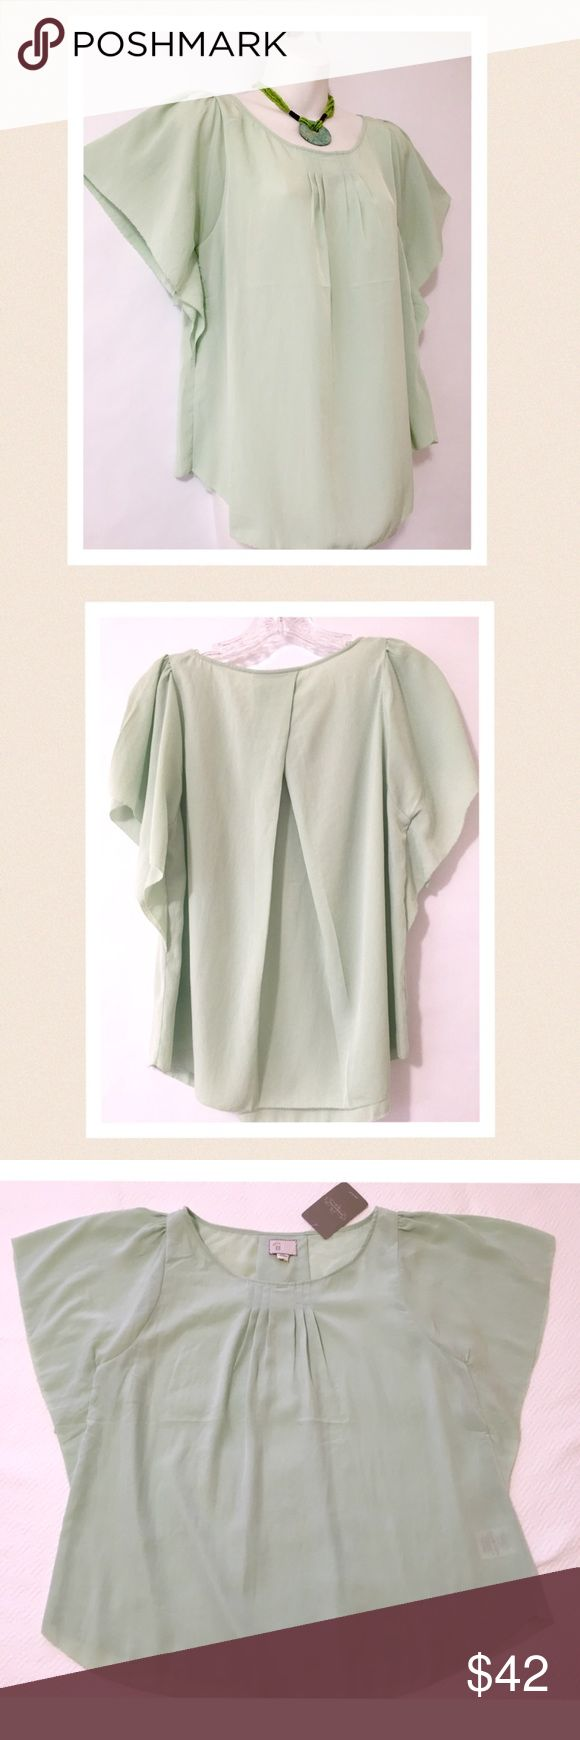 "Anthropologie mint green top. NWT Soft and ultra-feminine mint green top. Gentle pleats at the scoop neck and large pleat at the back create a flowy feel and design. Raw edge hem and raw edge on batwing sleeves. Perfect condition. 🔹bust 19"" across the front armpit to armpit🔹length 23"" The tag says size 00 but the cut, design and measurements indicate that this top could fit sizes xtra small through medium. Anthropologie Tops"